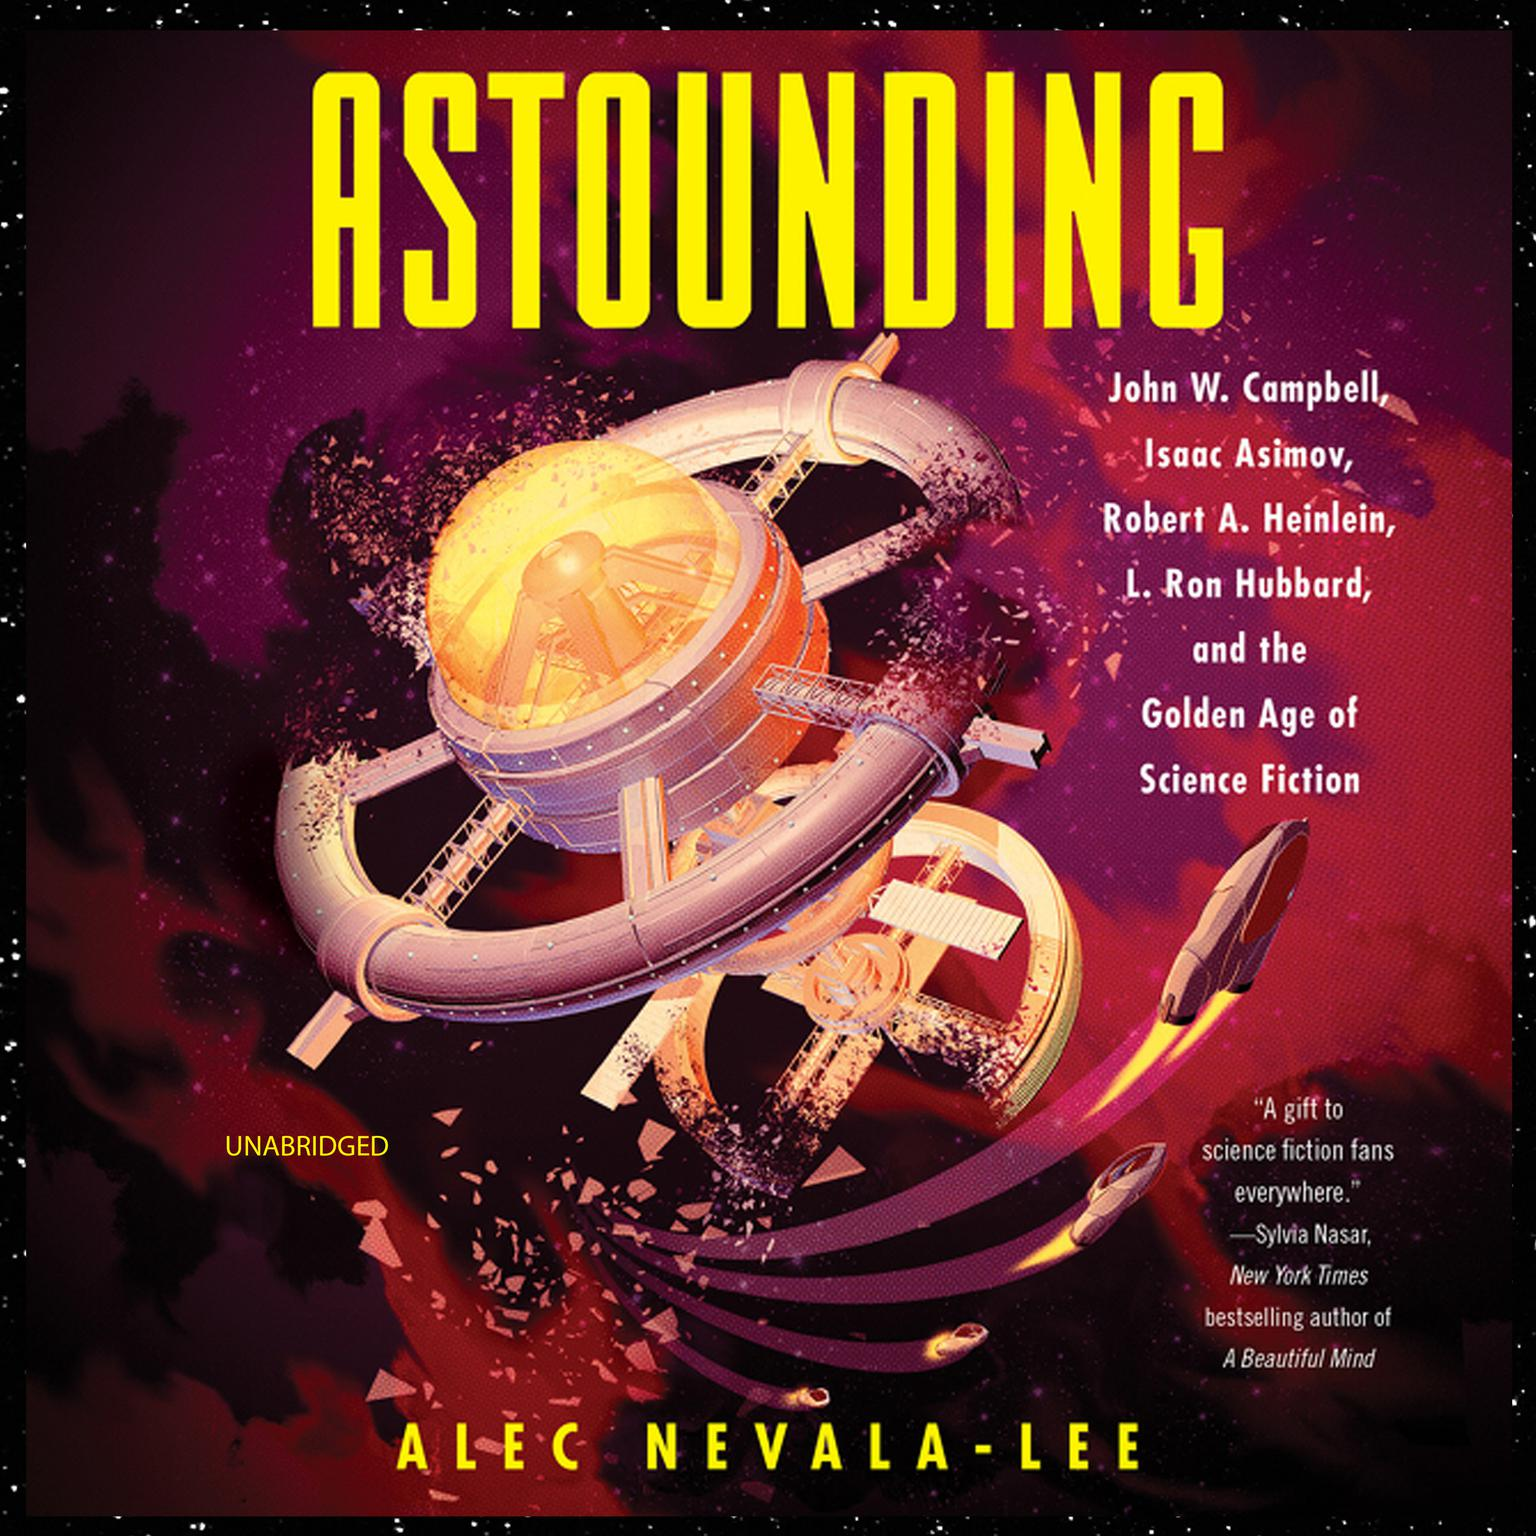 Astounding: John W. Campbell, Isaac Asimov, Robert A. Heinlen, L. Ron Hubbard, and the Golden Age of Science Fiction Audiobook, by Alec Nevala-Lee